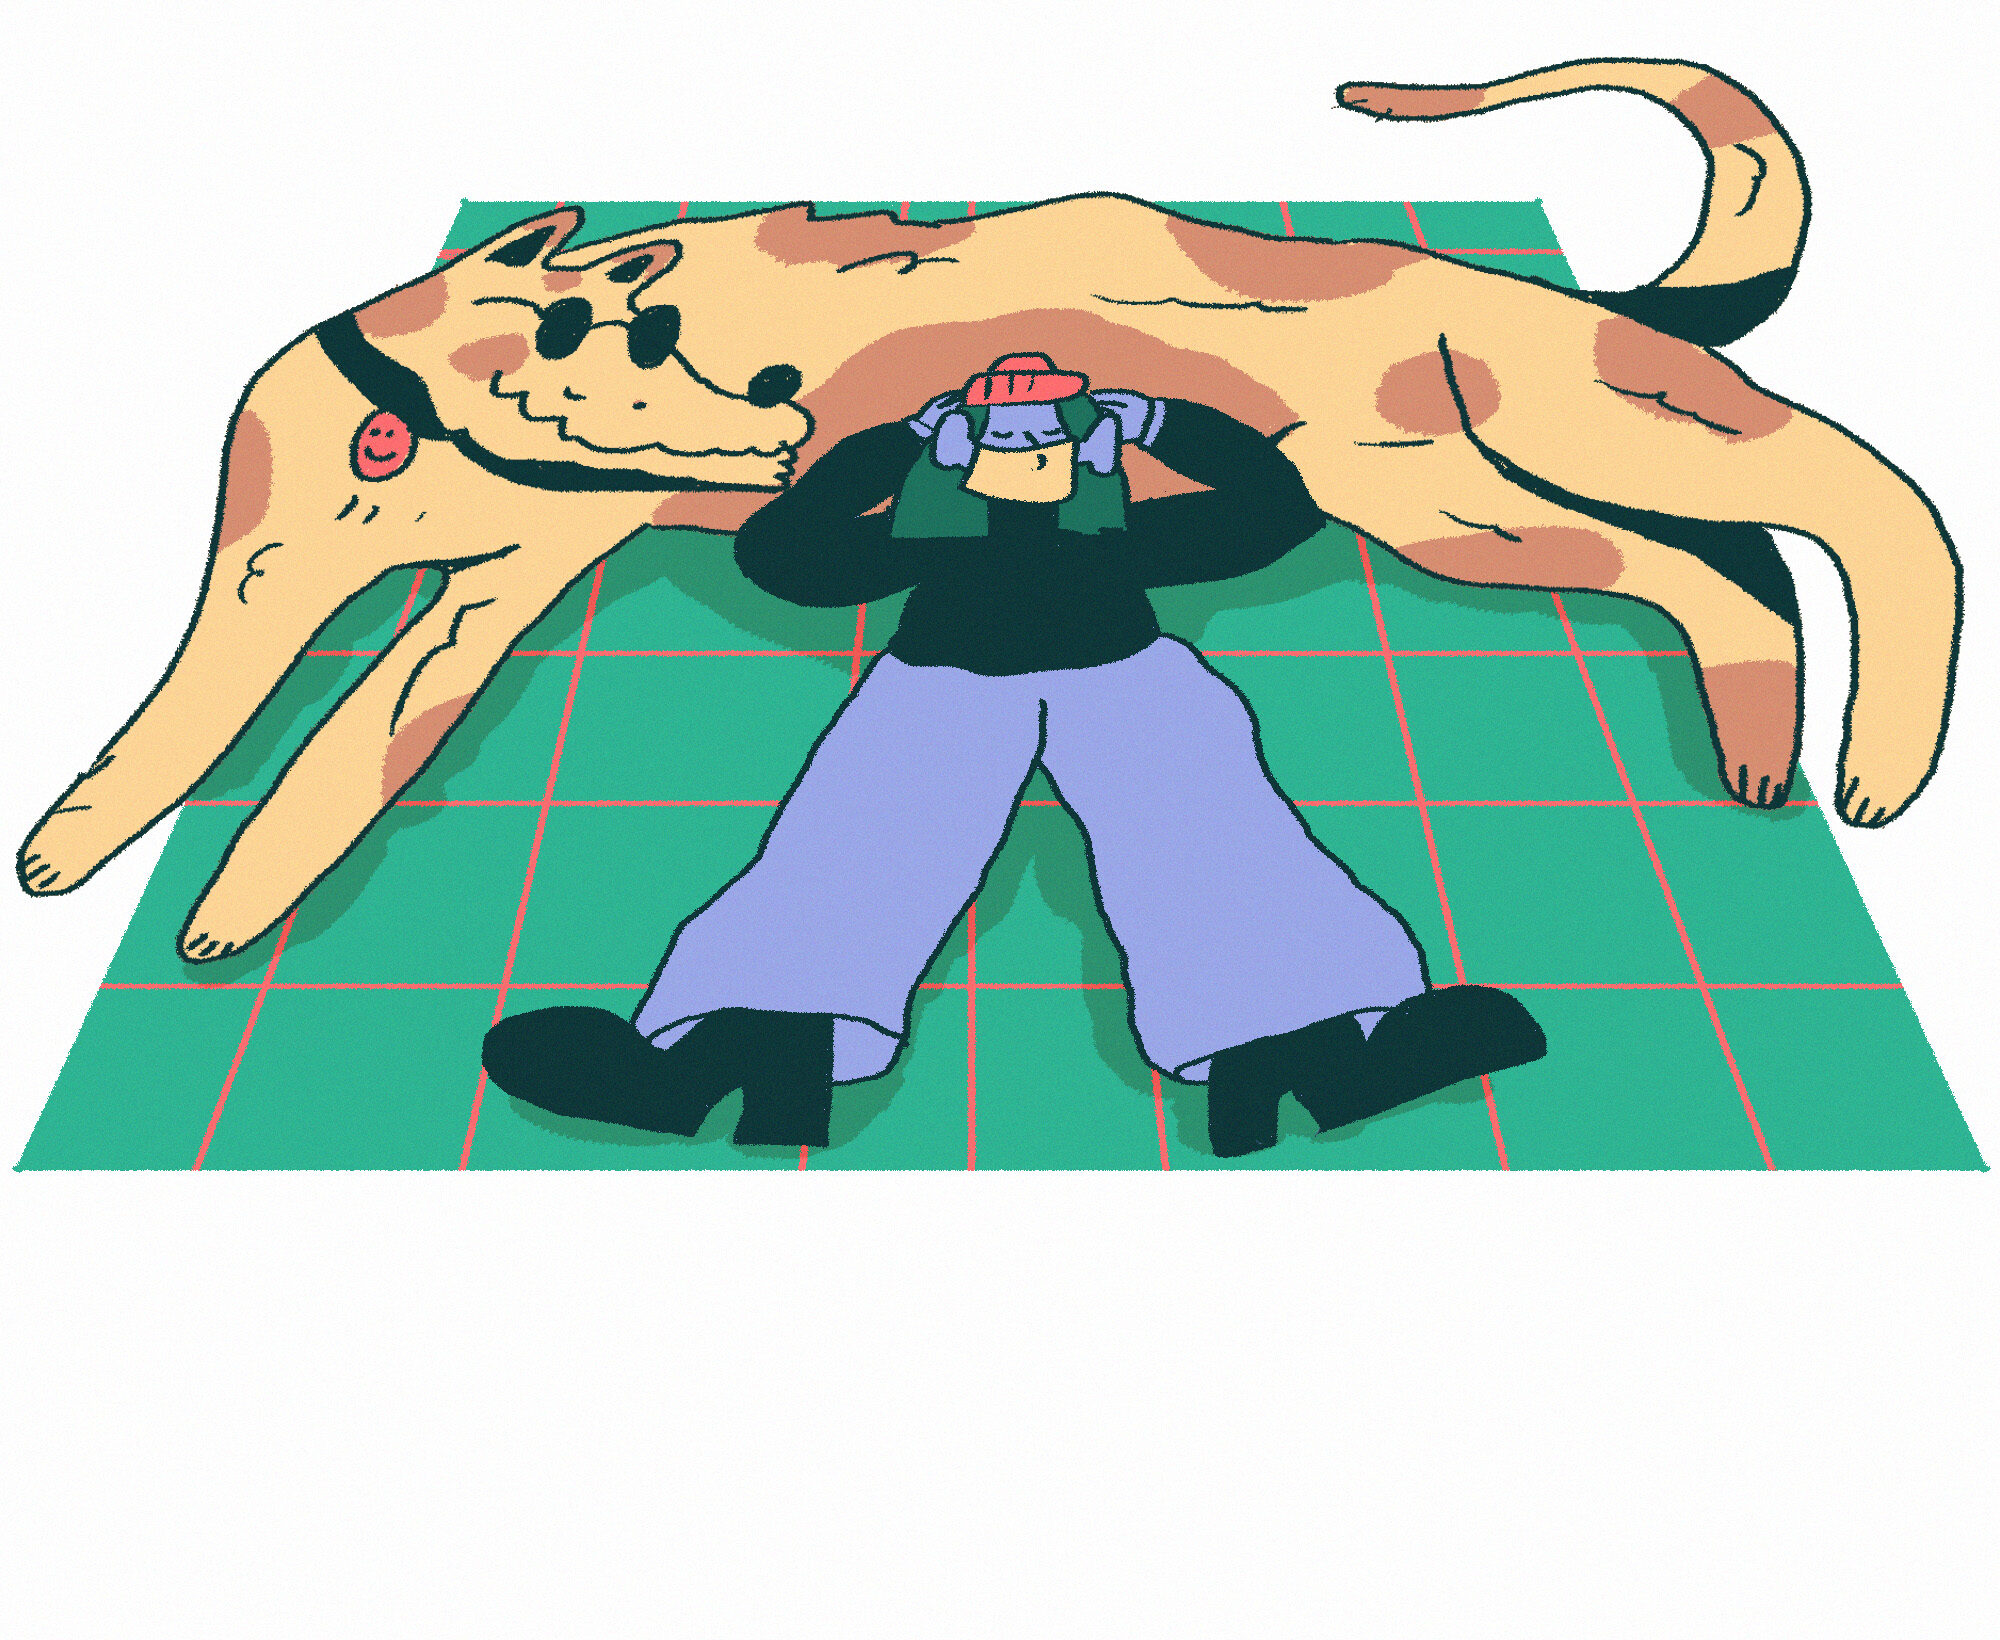 A large spotty dog lying out on a green rug, and a person wearing a face mask resting their head on the dog, like a pillow.